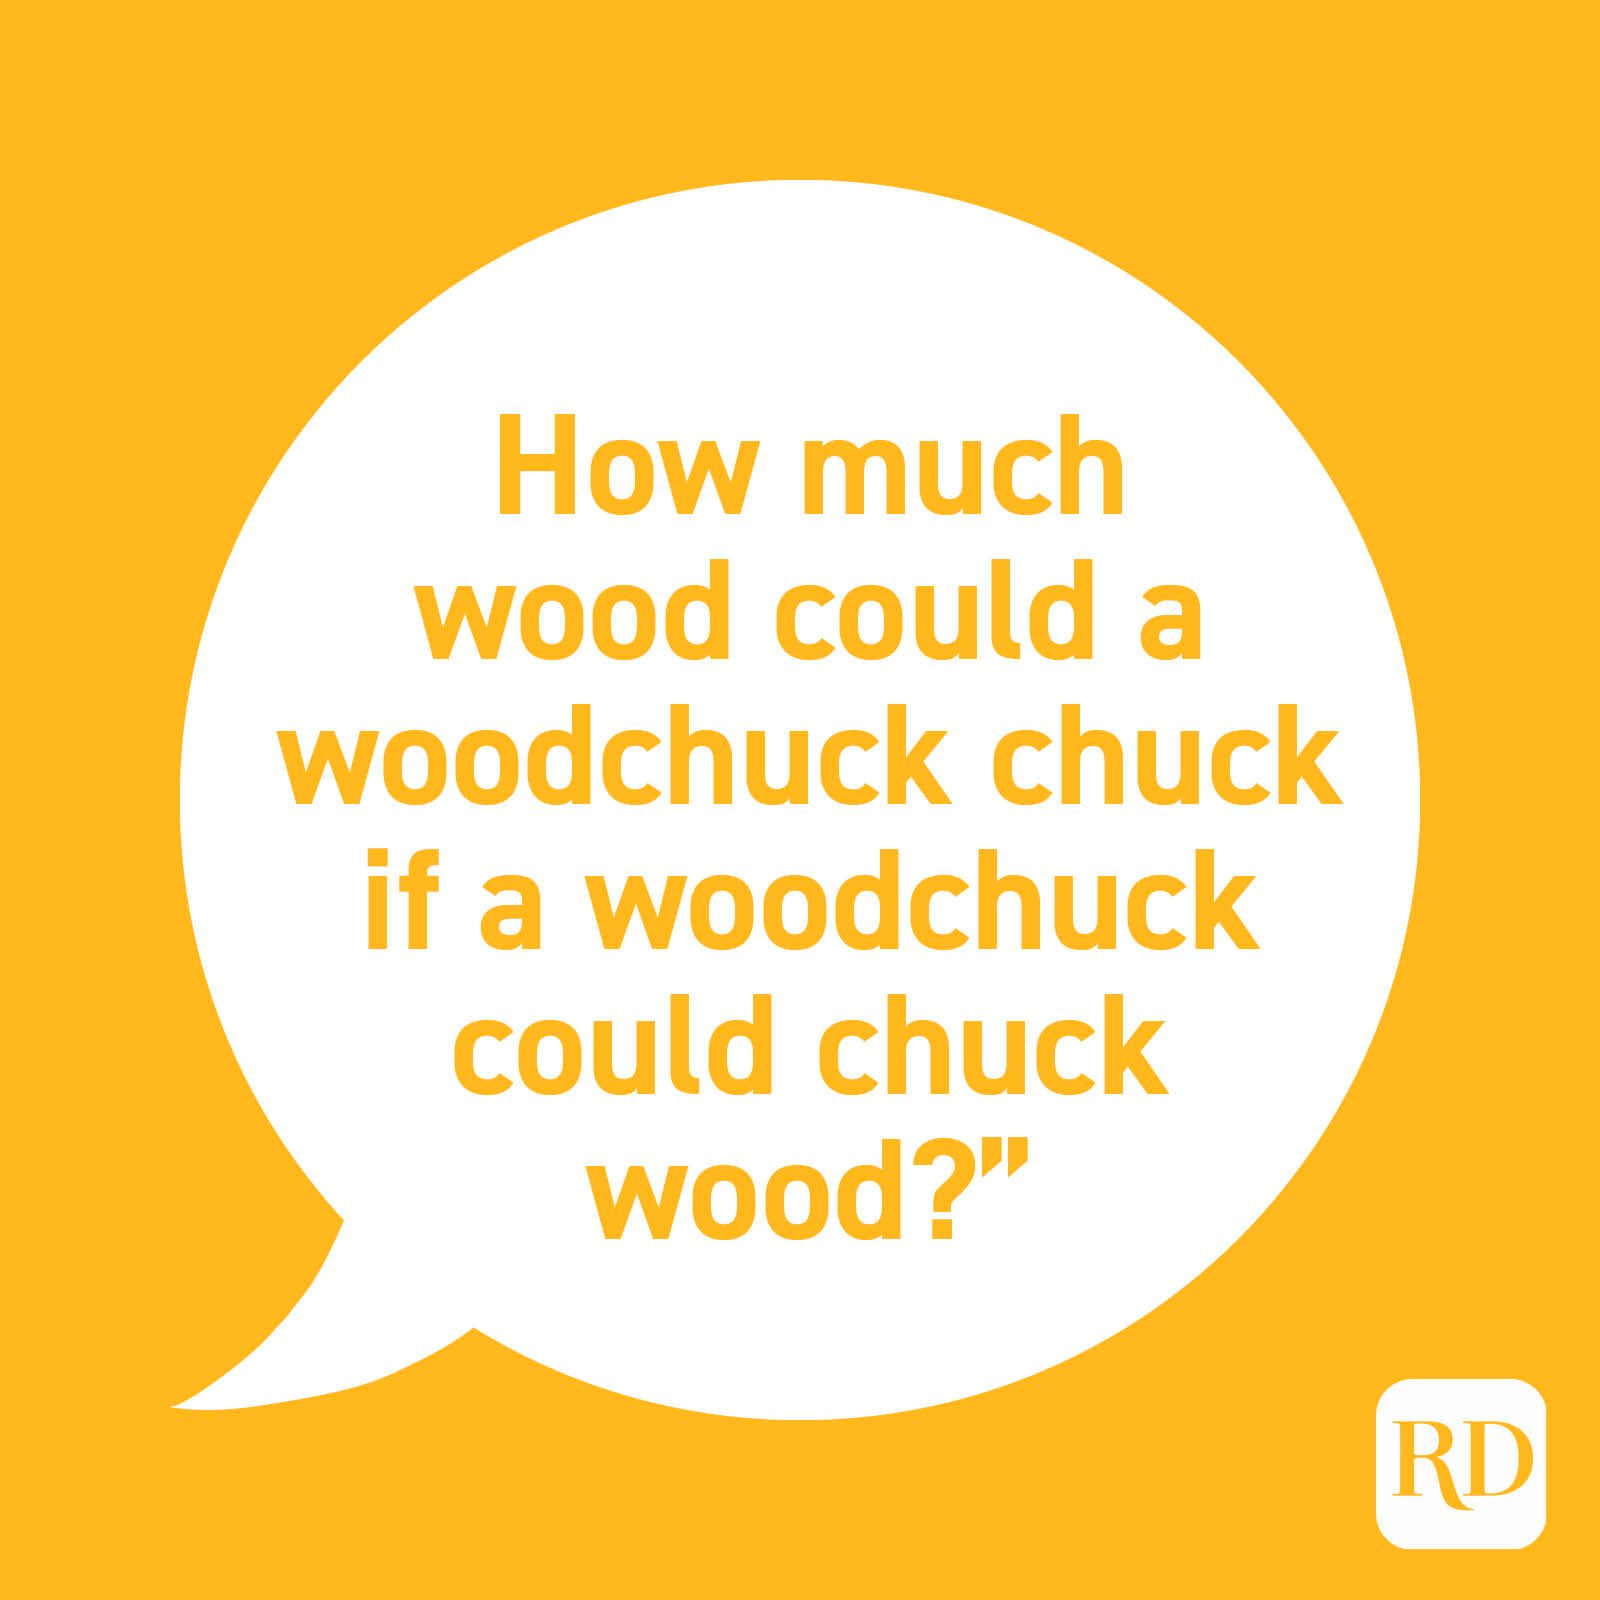 """How much wood could a woodchuck chuck if a woodchuck could chuck wood?"""